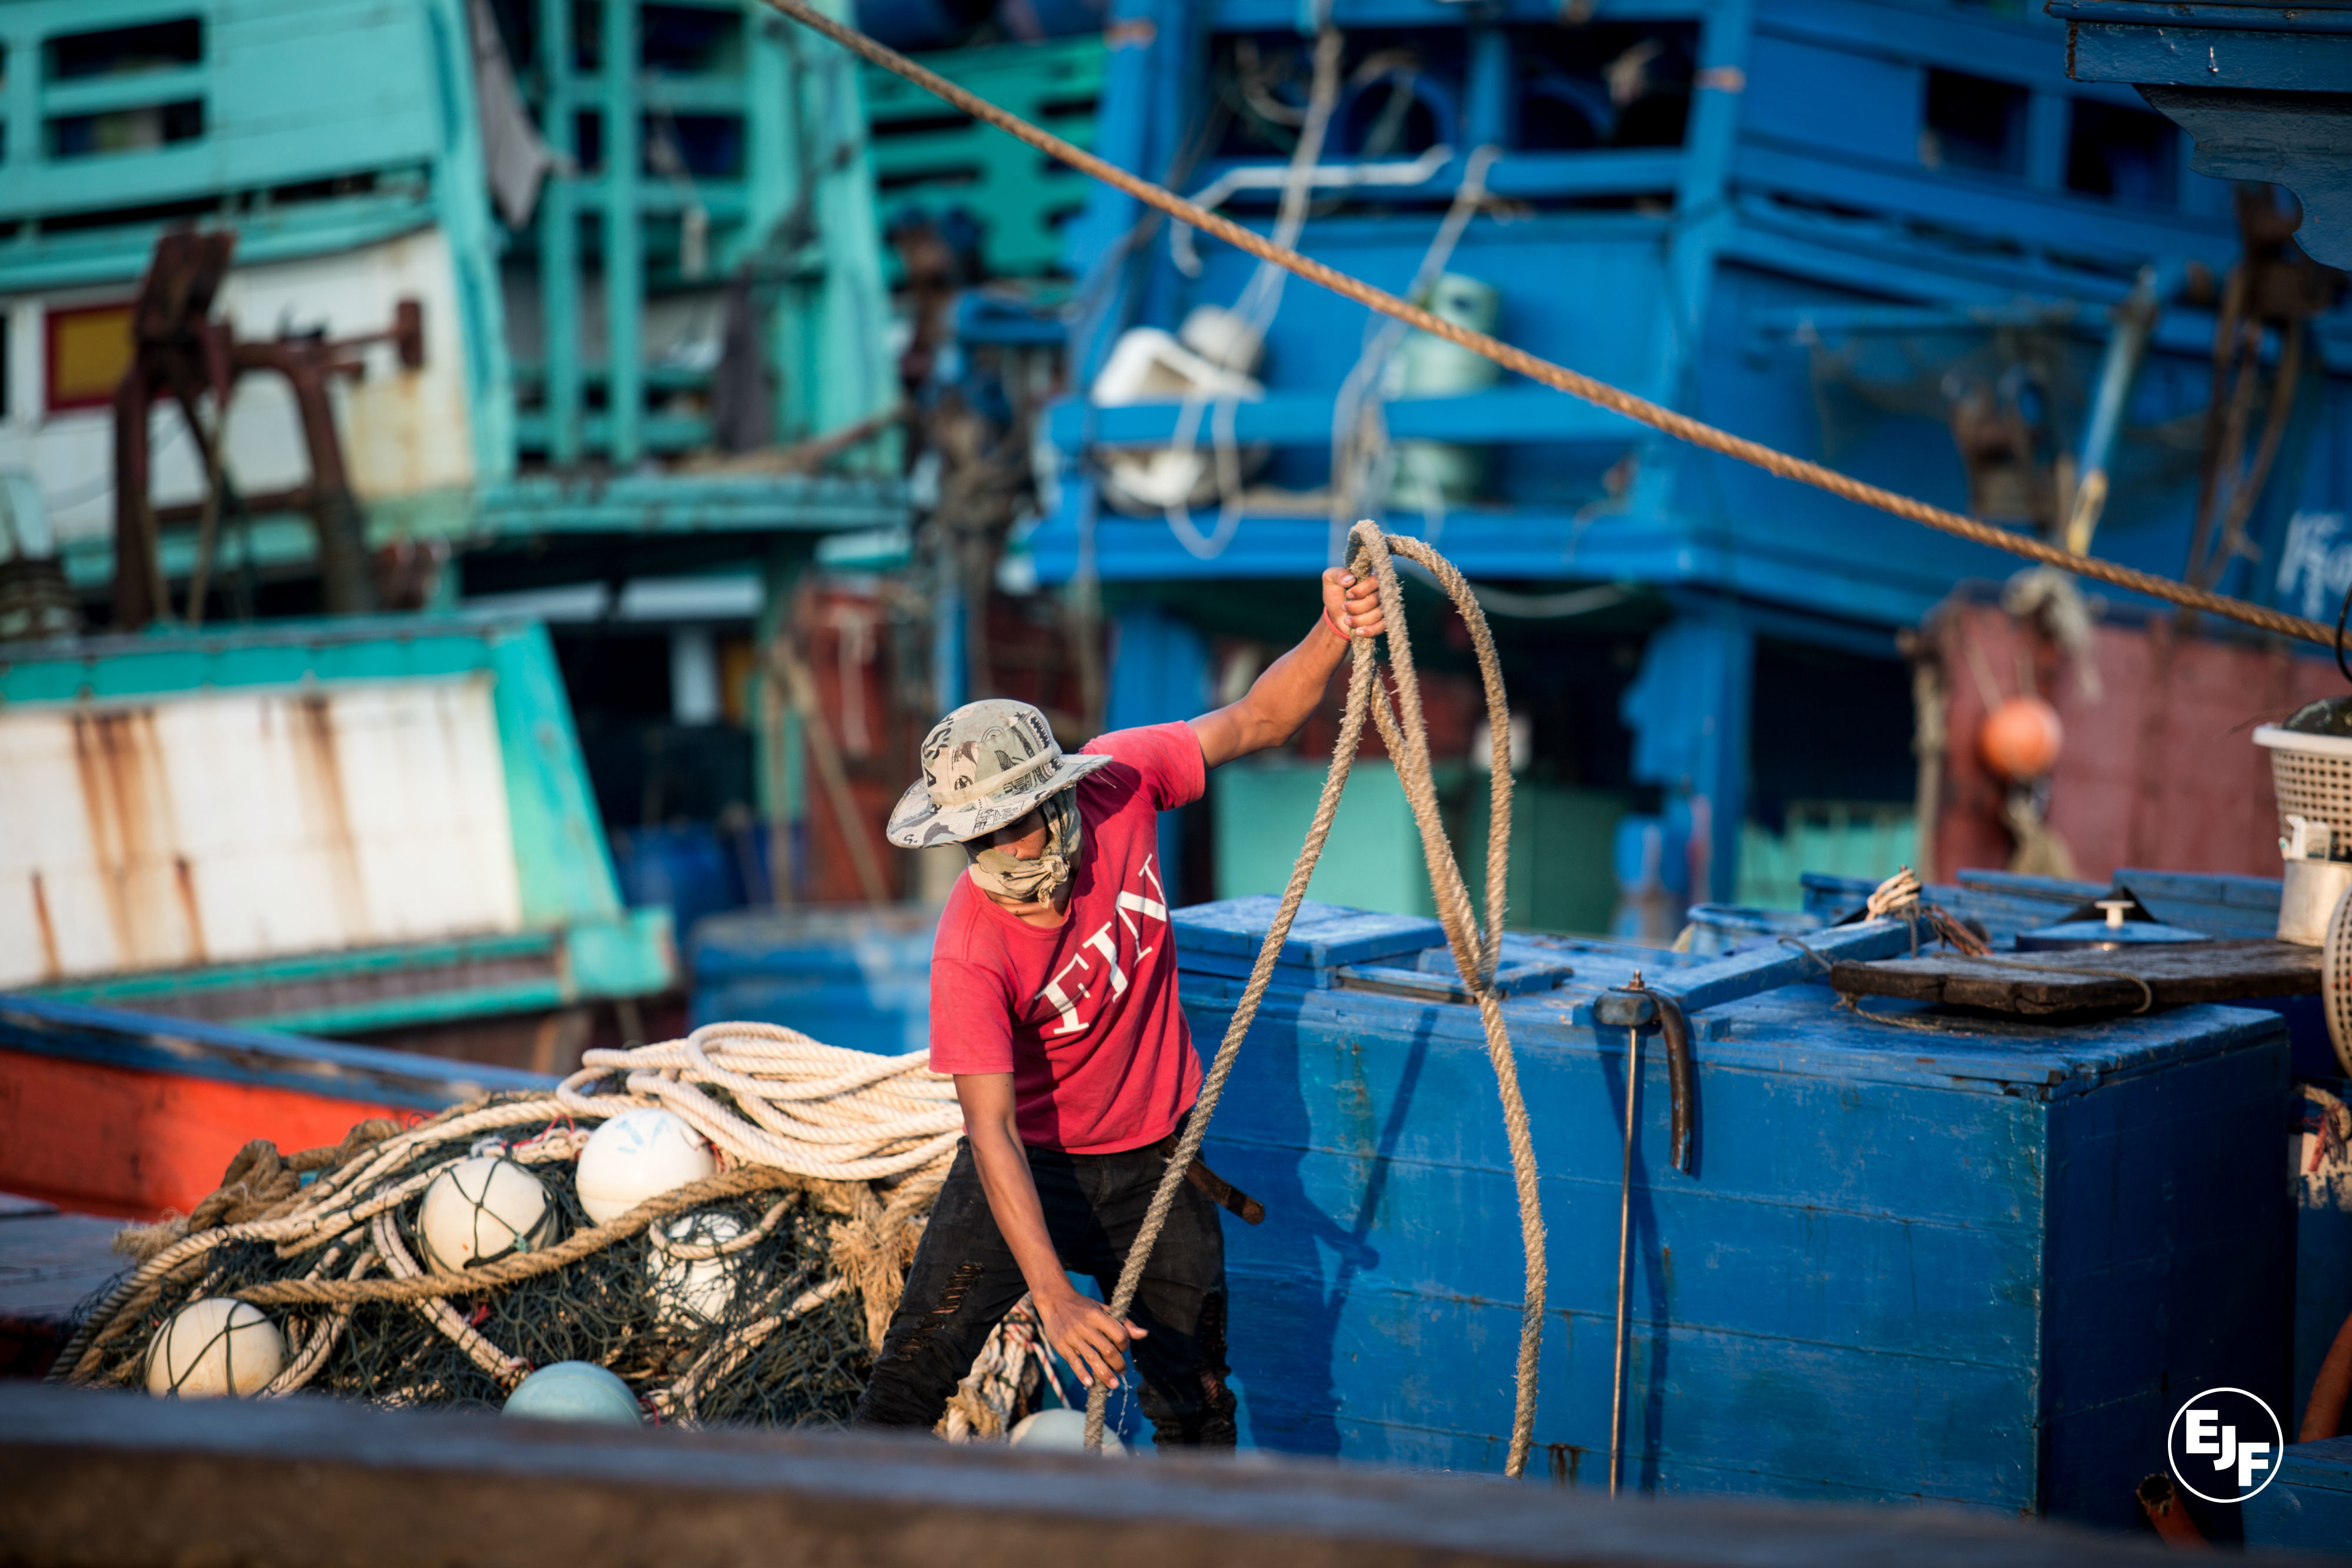 Eliminating modern slavery from supply chains